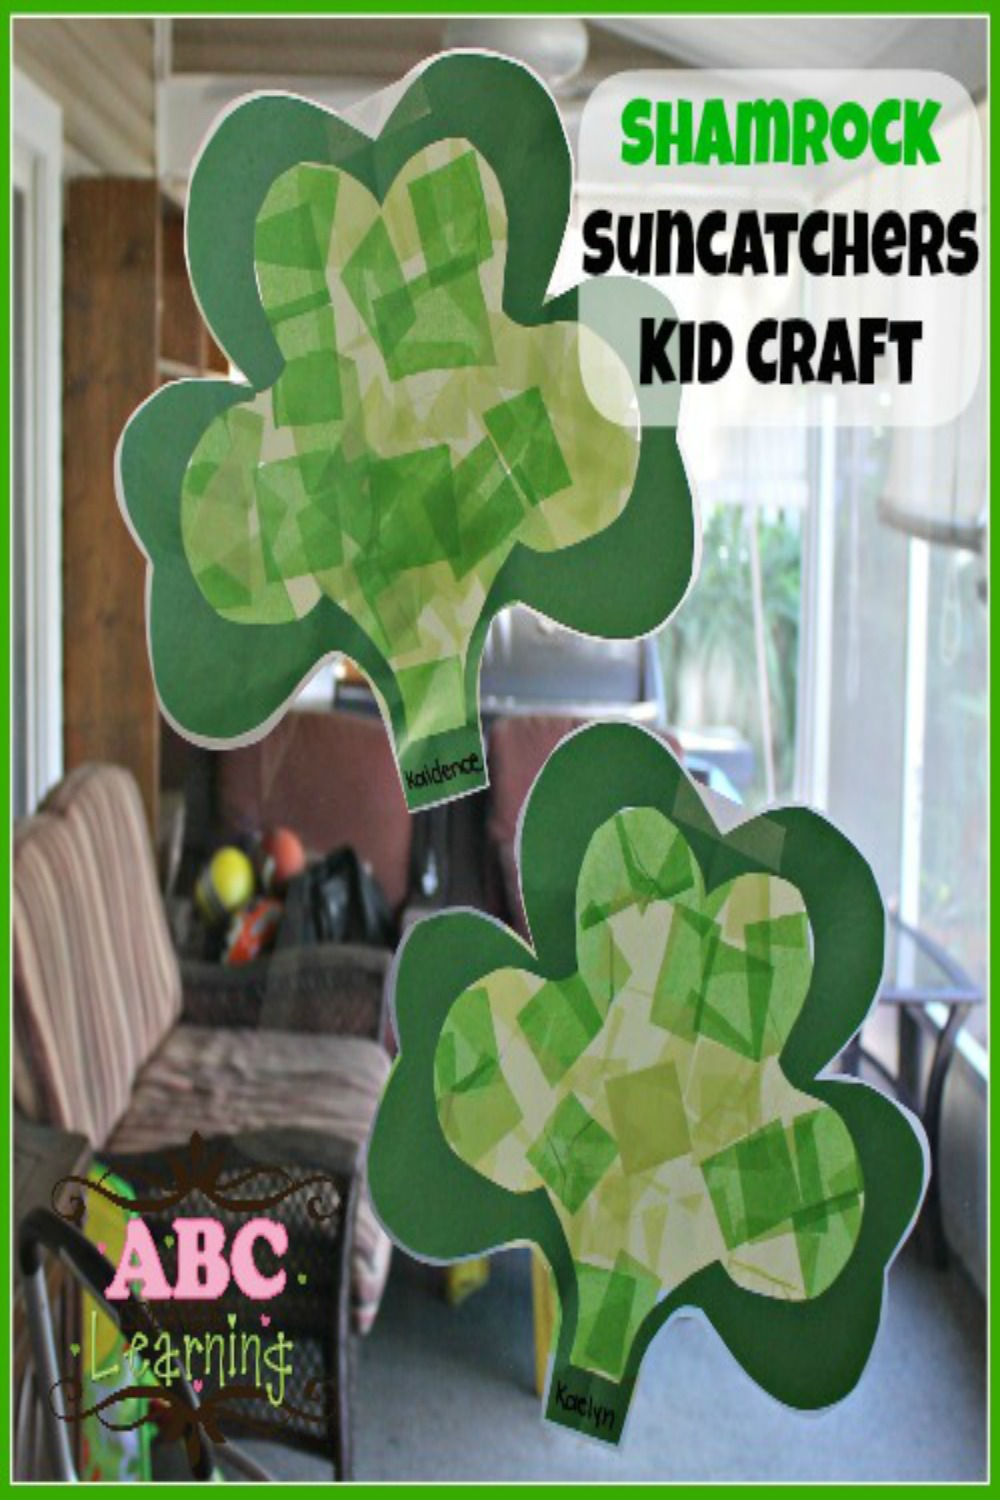 Shamrock-Suncatchers-Kid-Crafts